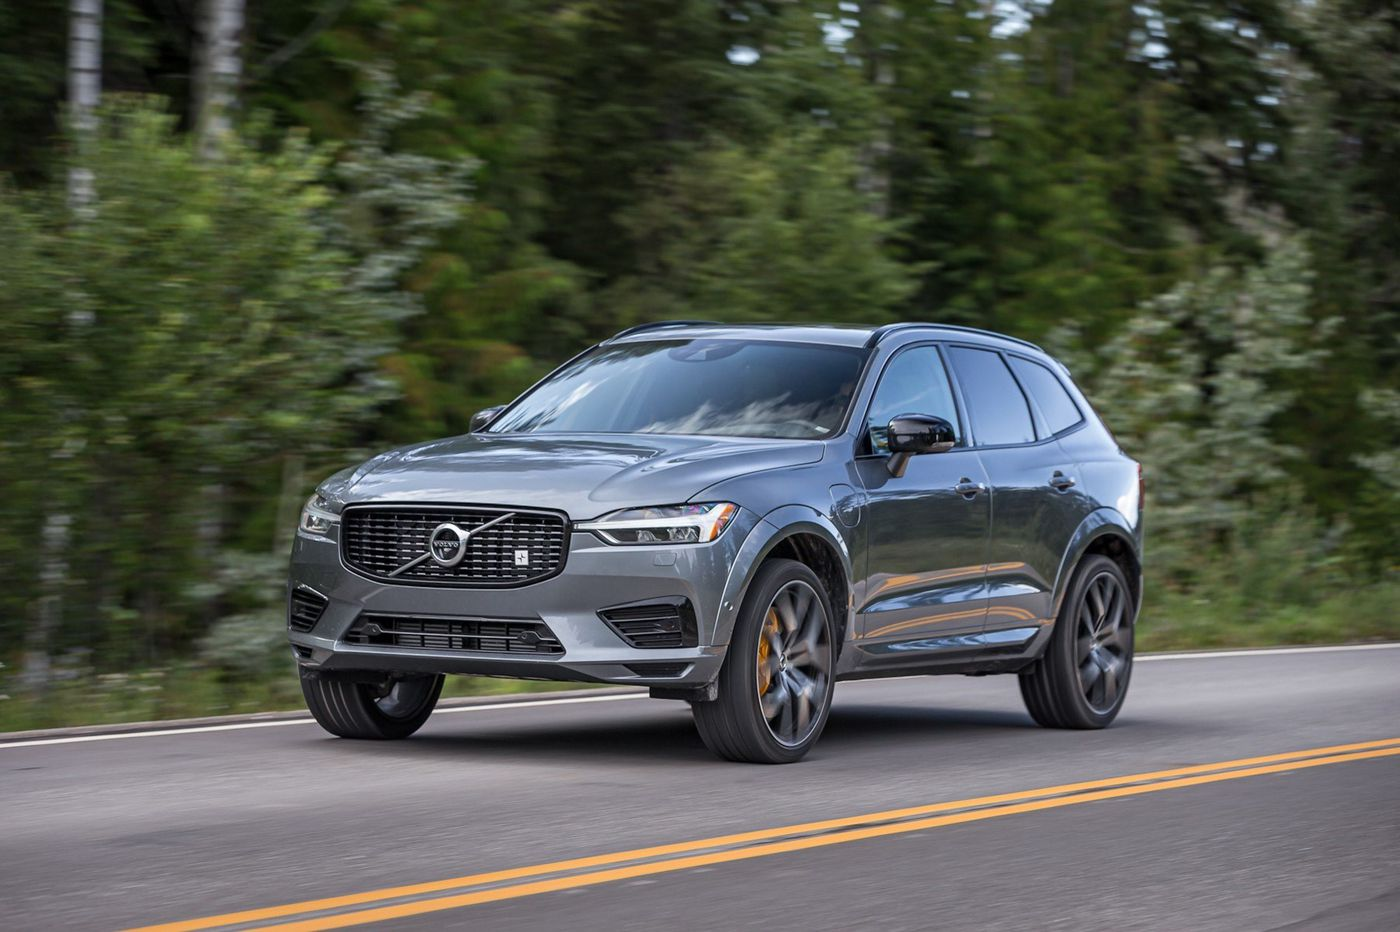 A fuel-sipping, high-performing Volvo SUV? It's real, but real pricey.